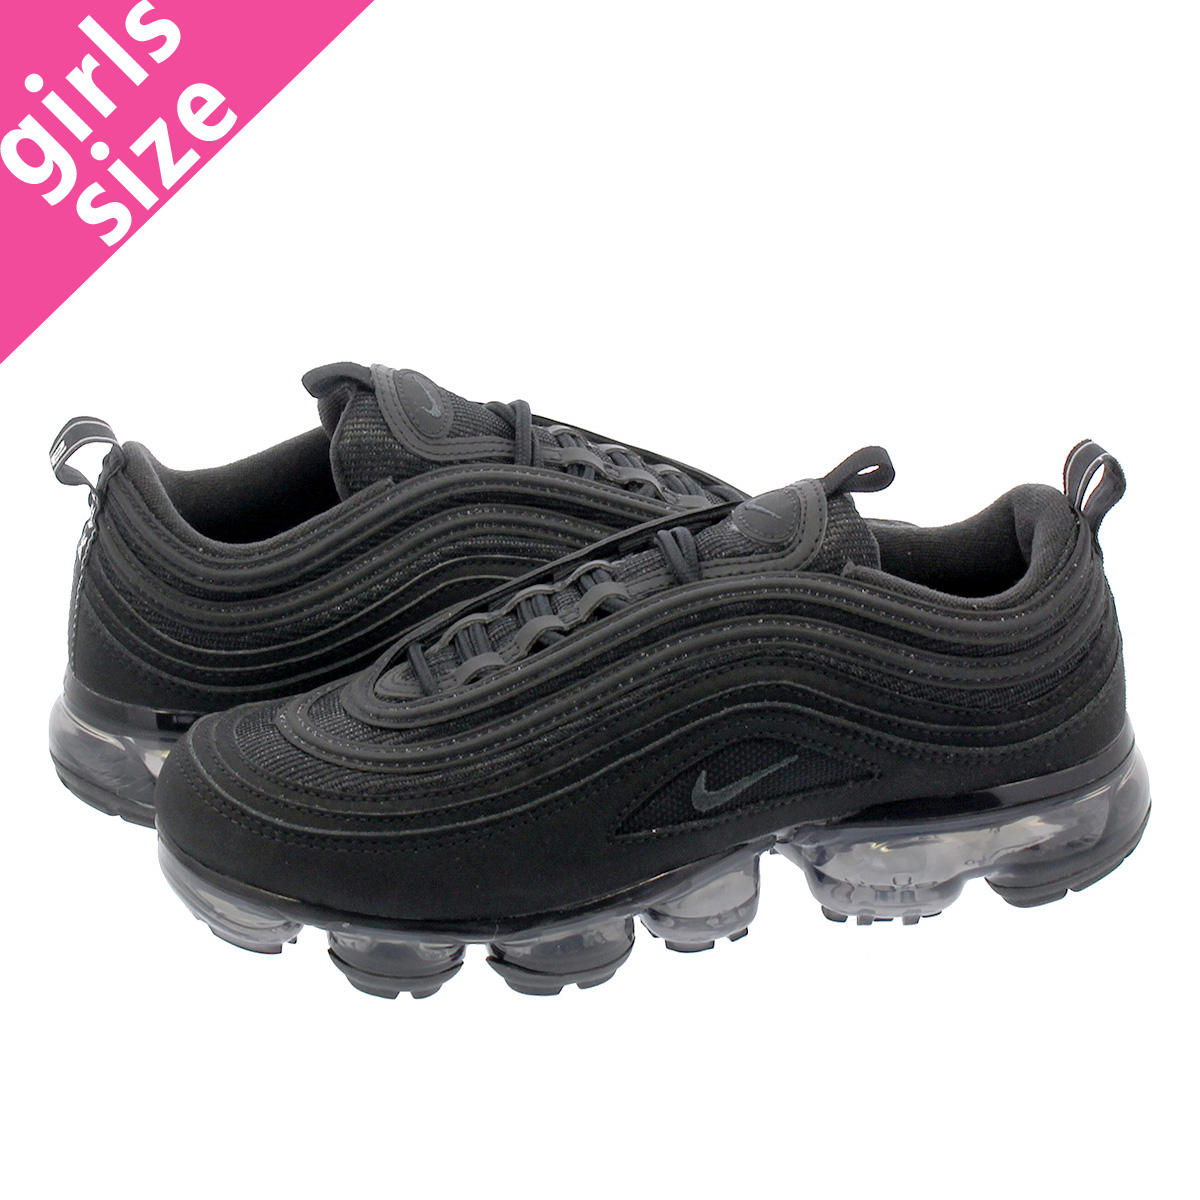 finest selection 03eb3 3ccde NIKE AIR VAPORMAX 97 GS Nike air vapor max 97 GS BLACK/BLACK aq2657-001